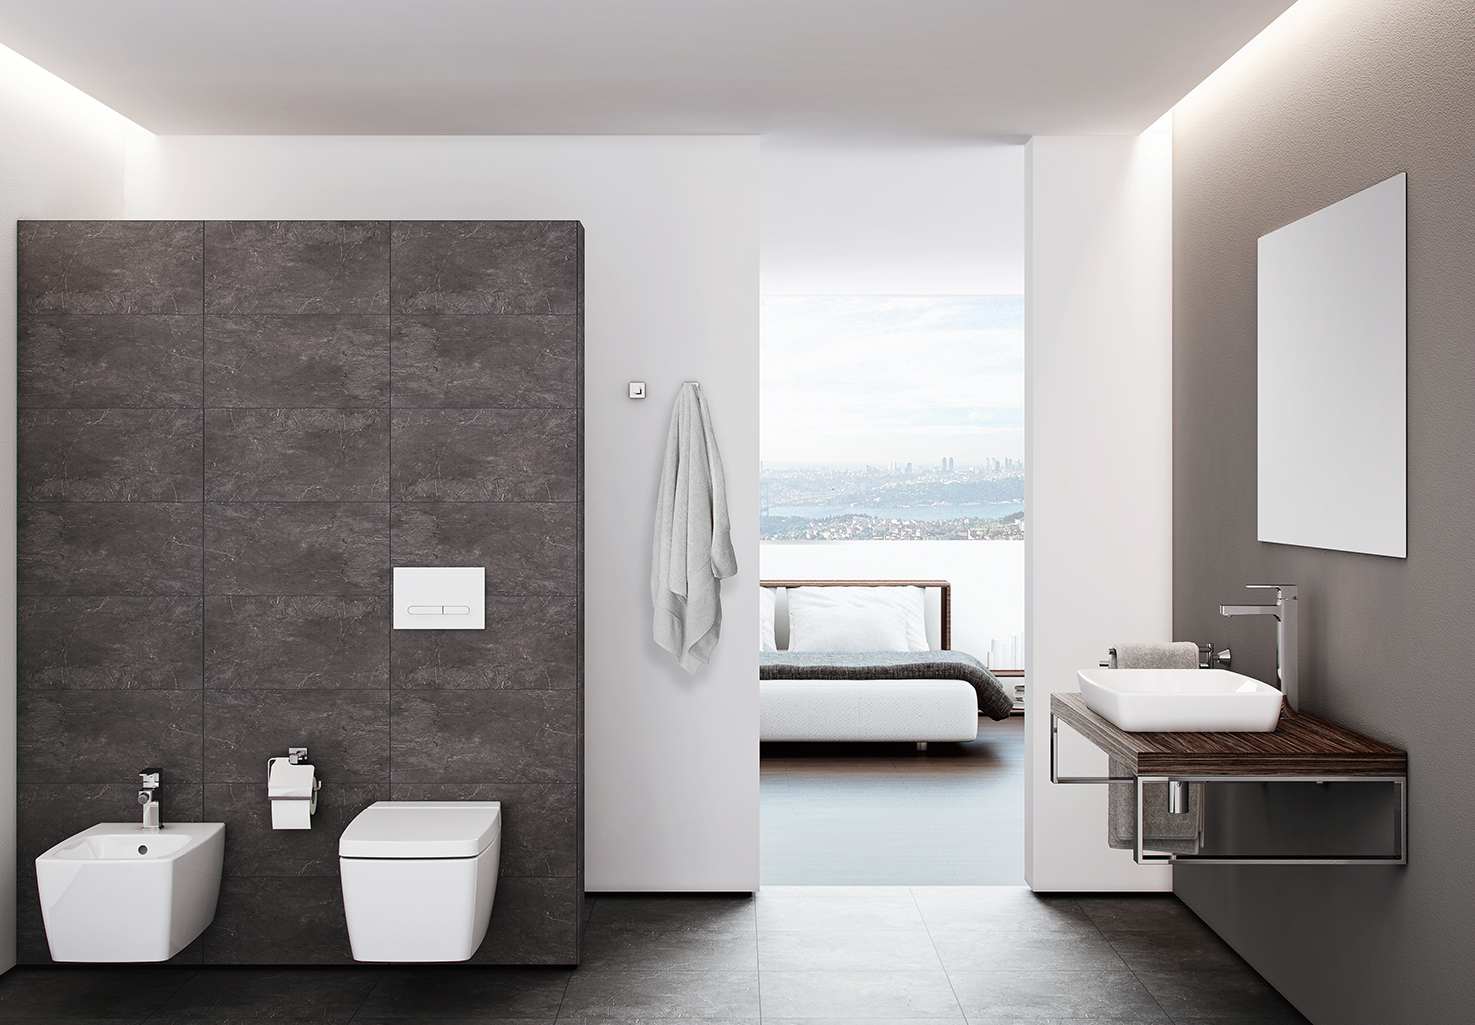 Bathroom Designs Malta about us - vivo bathrooms and ceramics malta